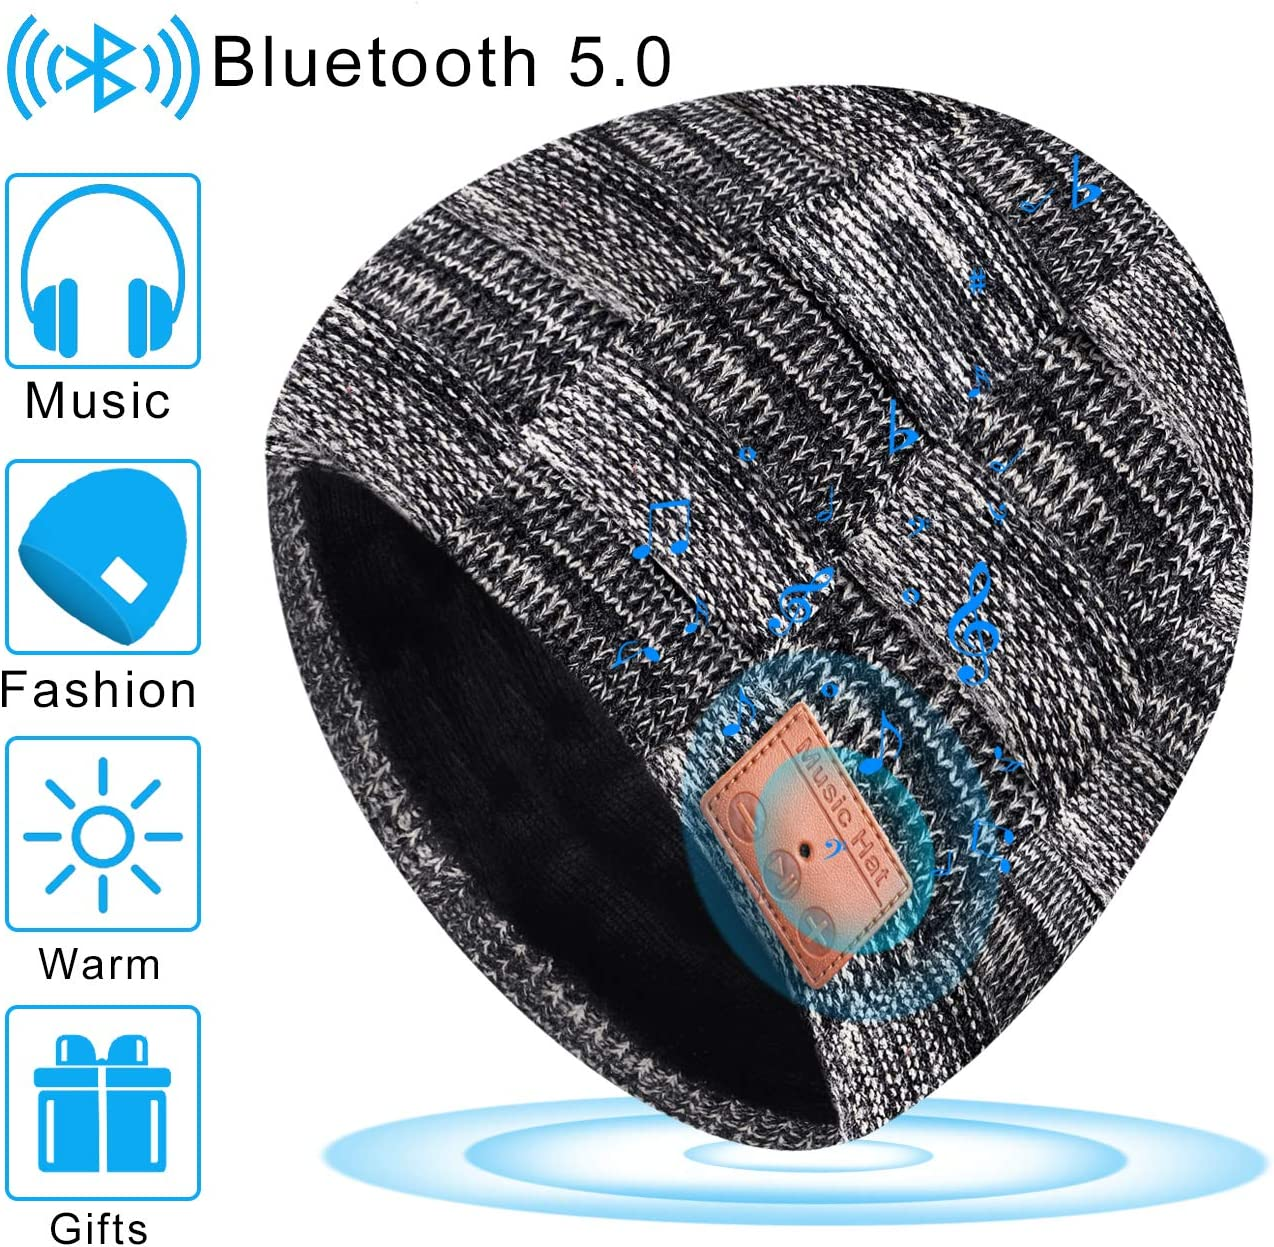 Bluetooth Beanie Hat V5.0 Winter Warm Washable Knit Cap Unique Unisex Gifts for Men Women Built-in Detachable HD Stereo Speakers Microphone